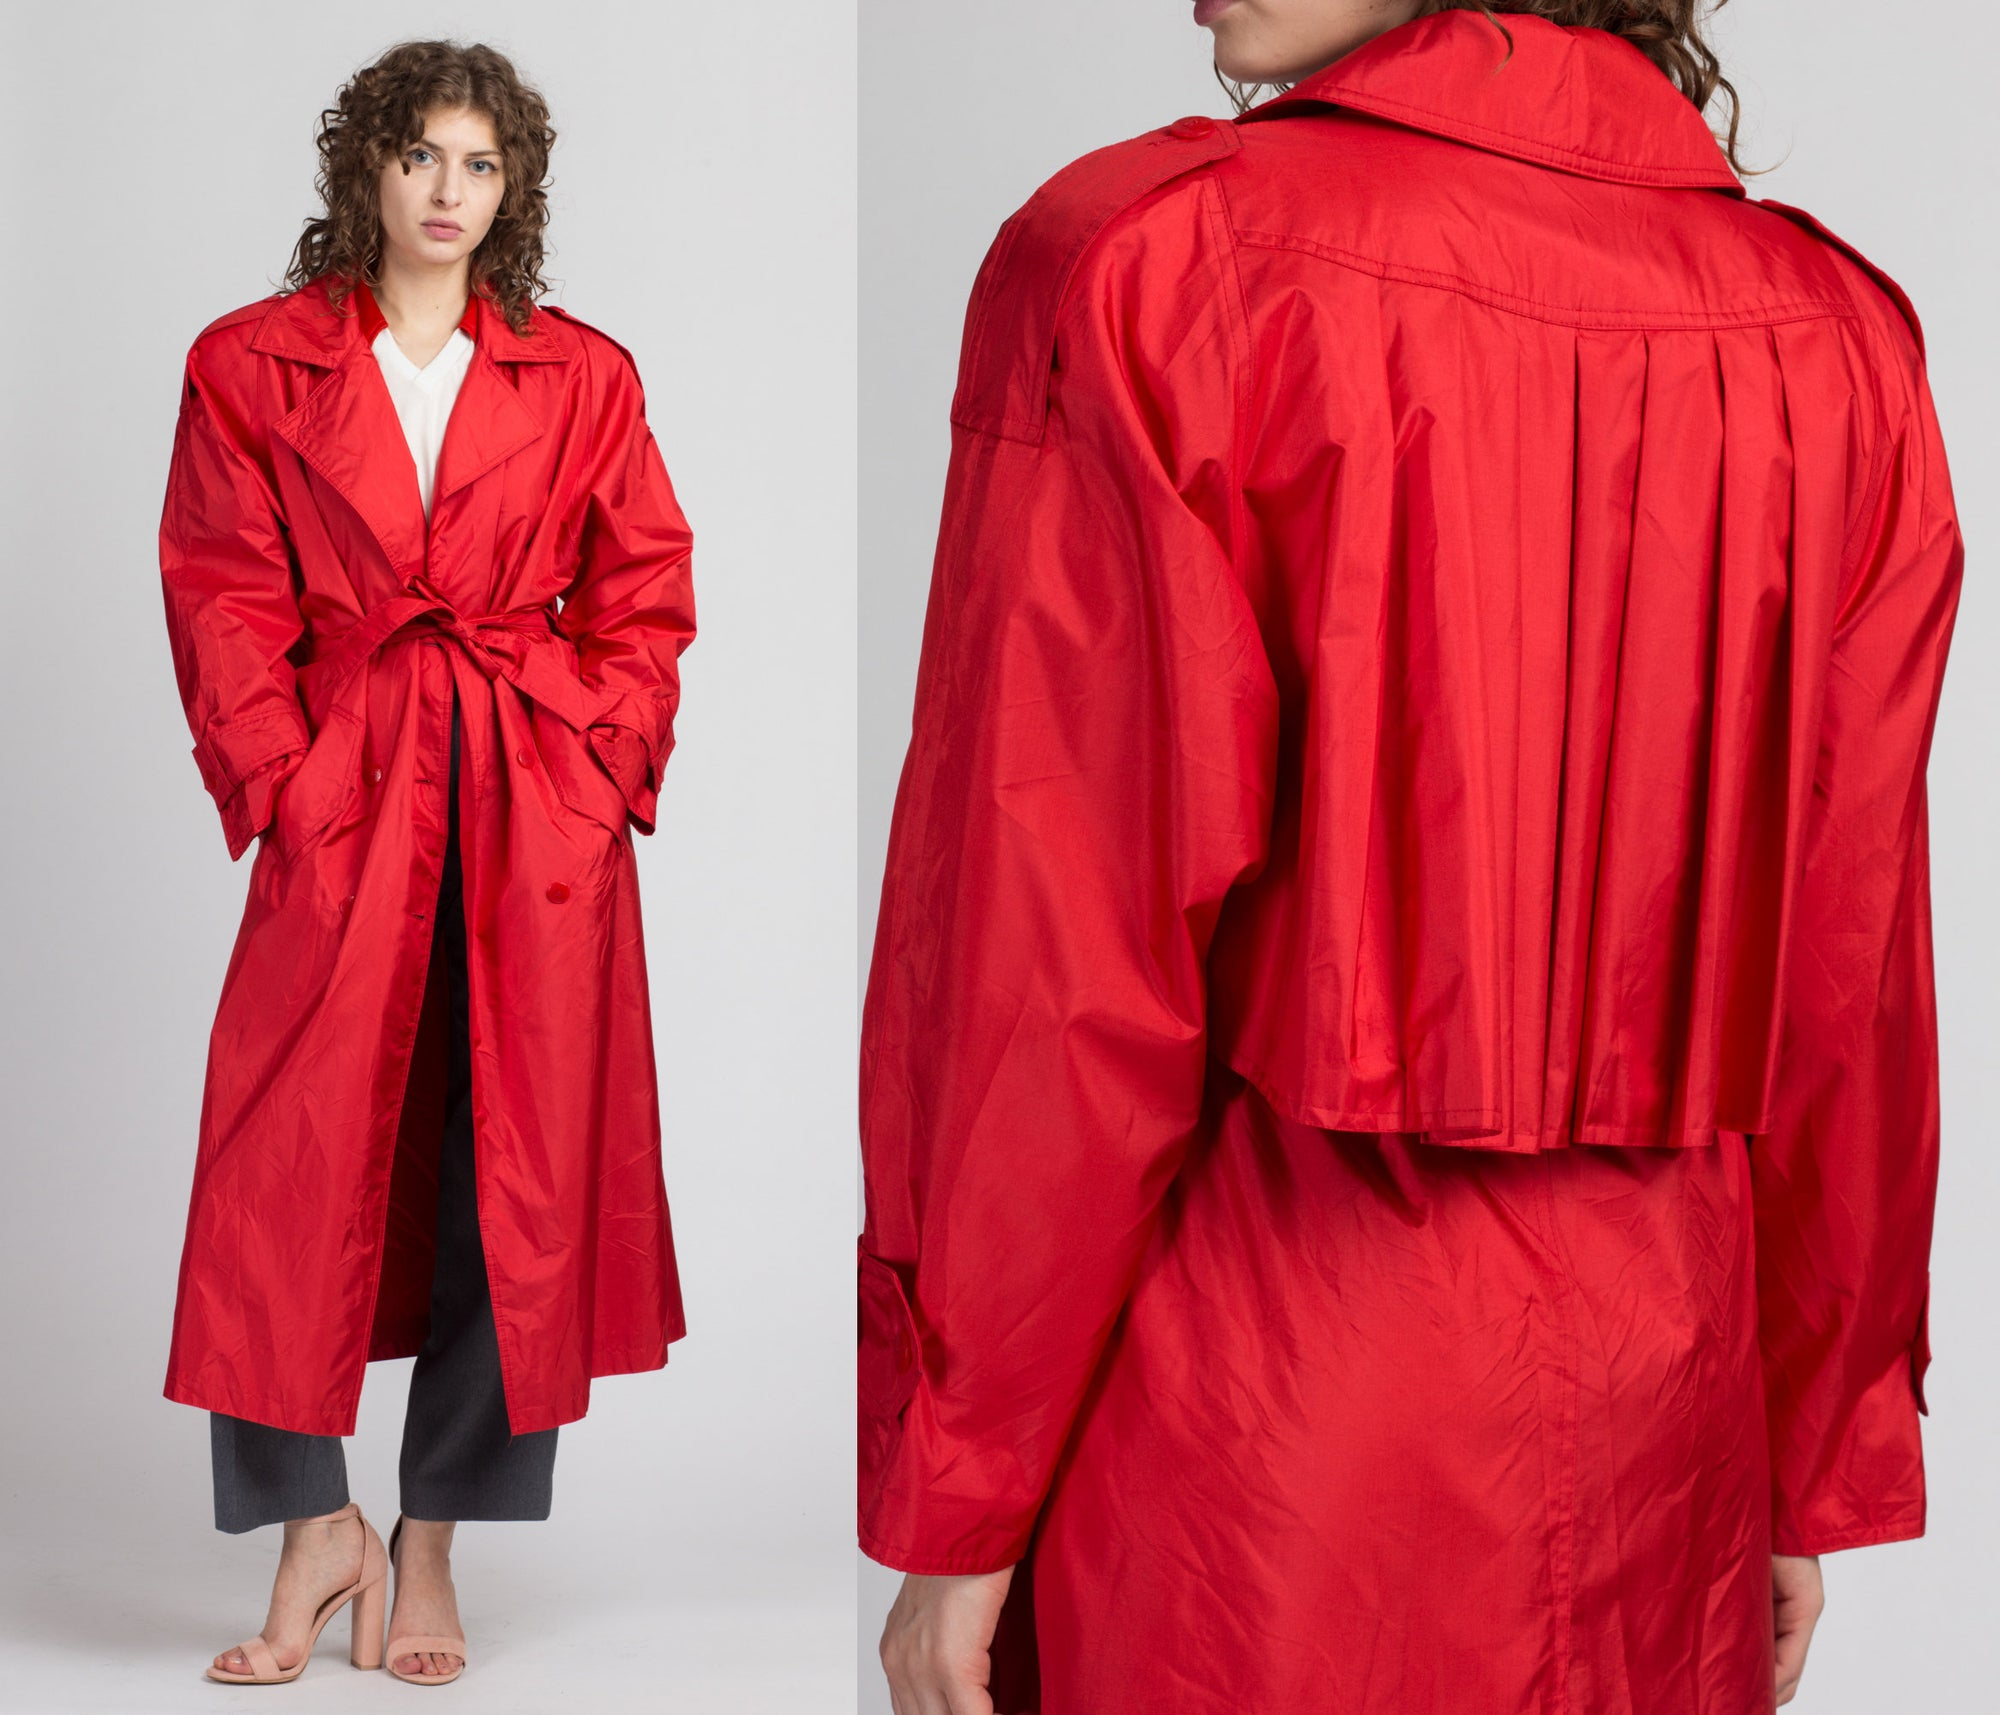 Vintage Red J. Gallery Trench Coat - Large